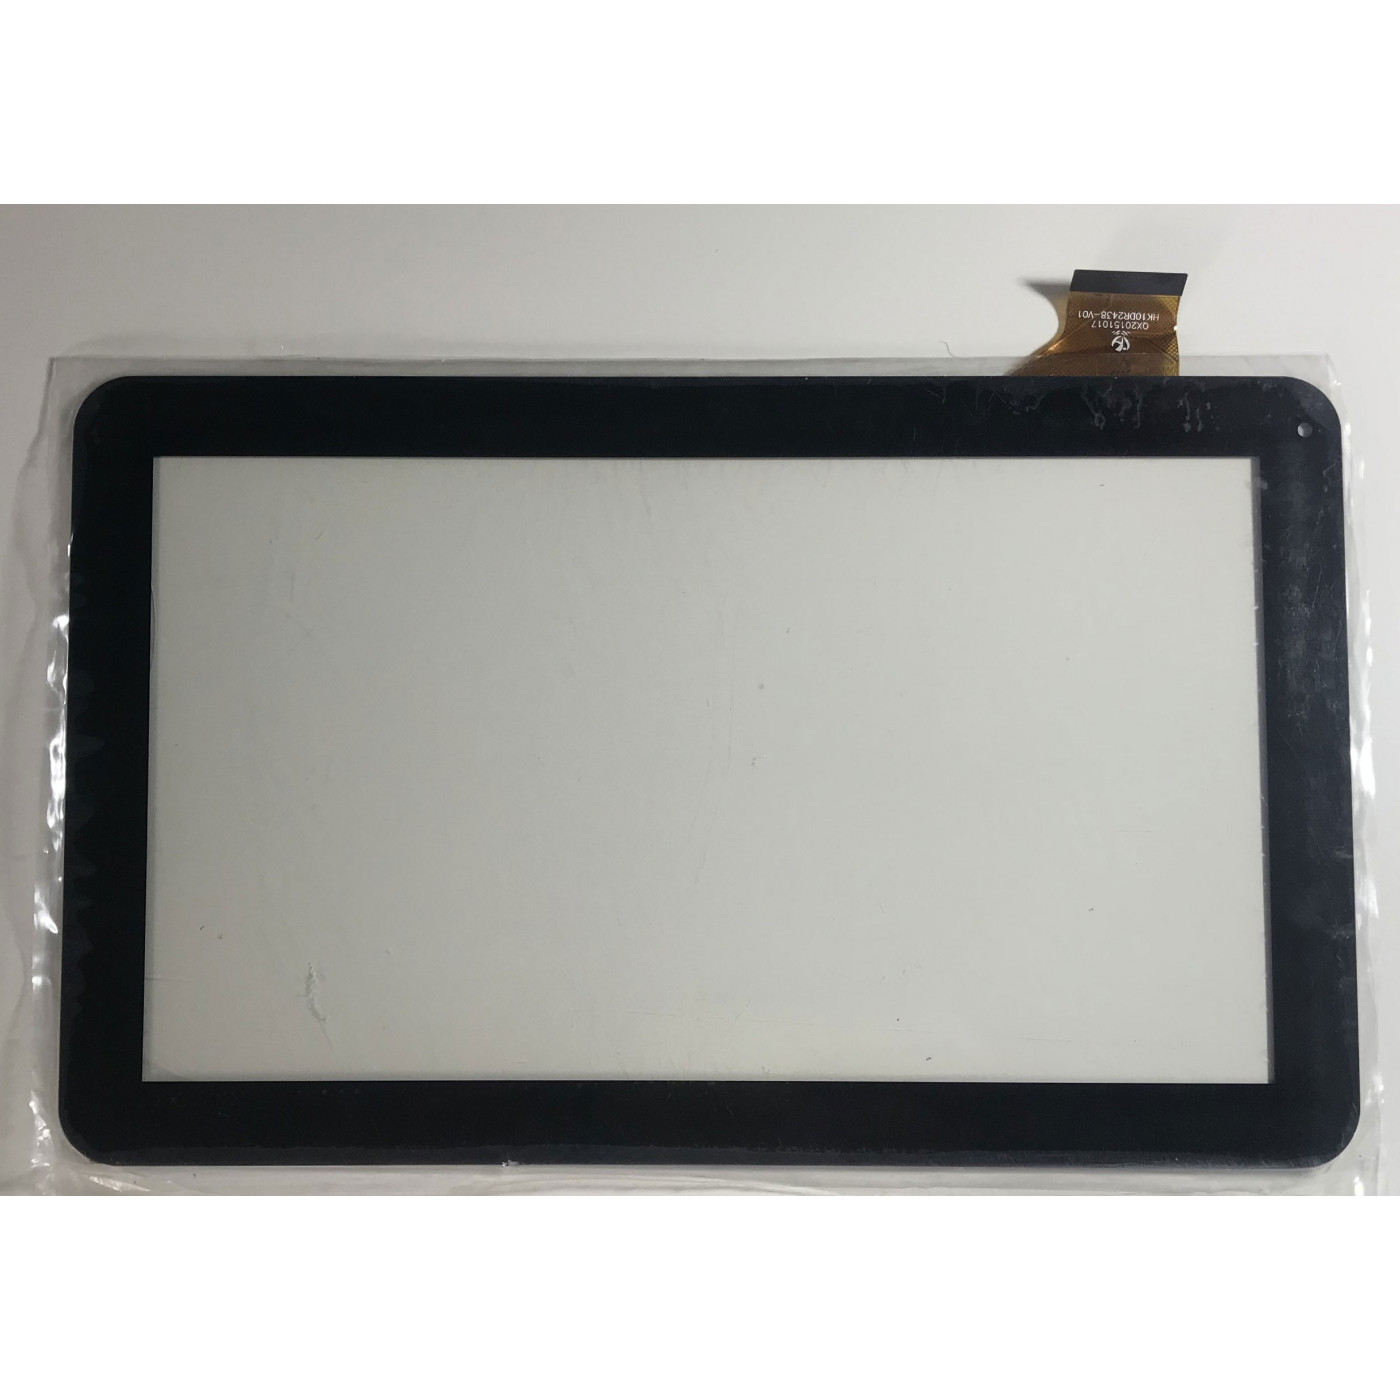 TOUCH SCREEN Miia TAB MT-734 MT-734G 3G GLASS Digitizer 7.0 black